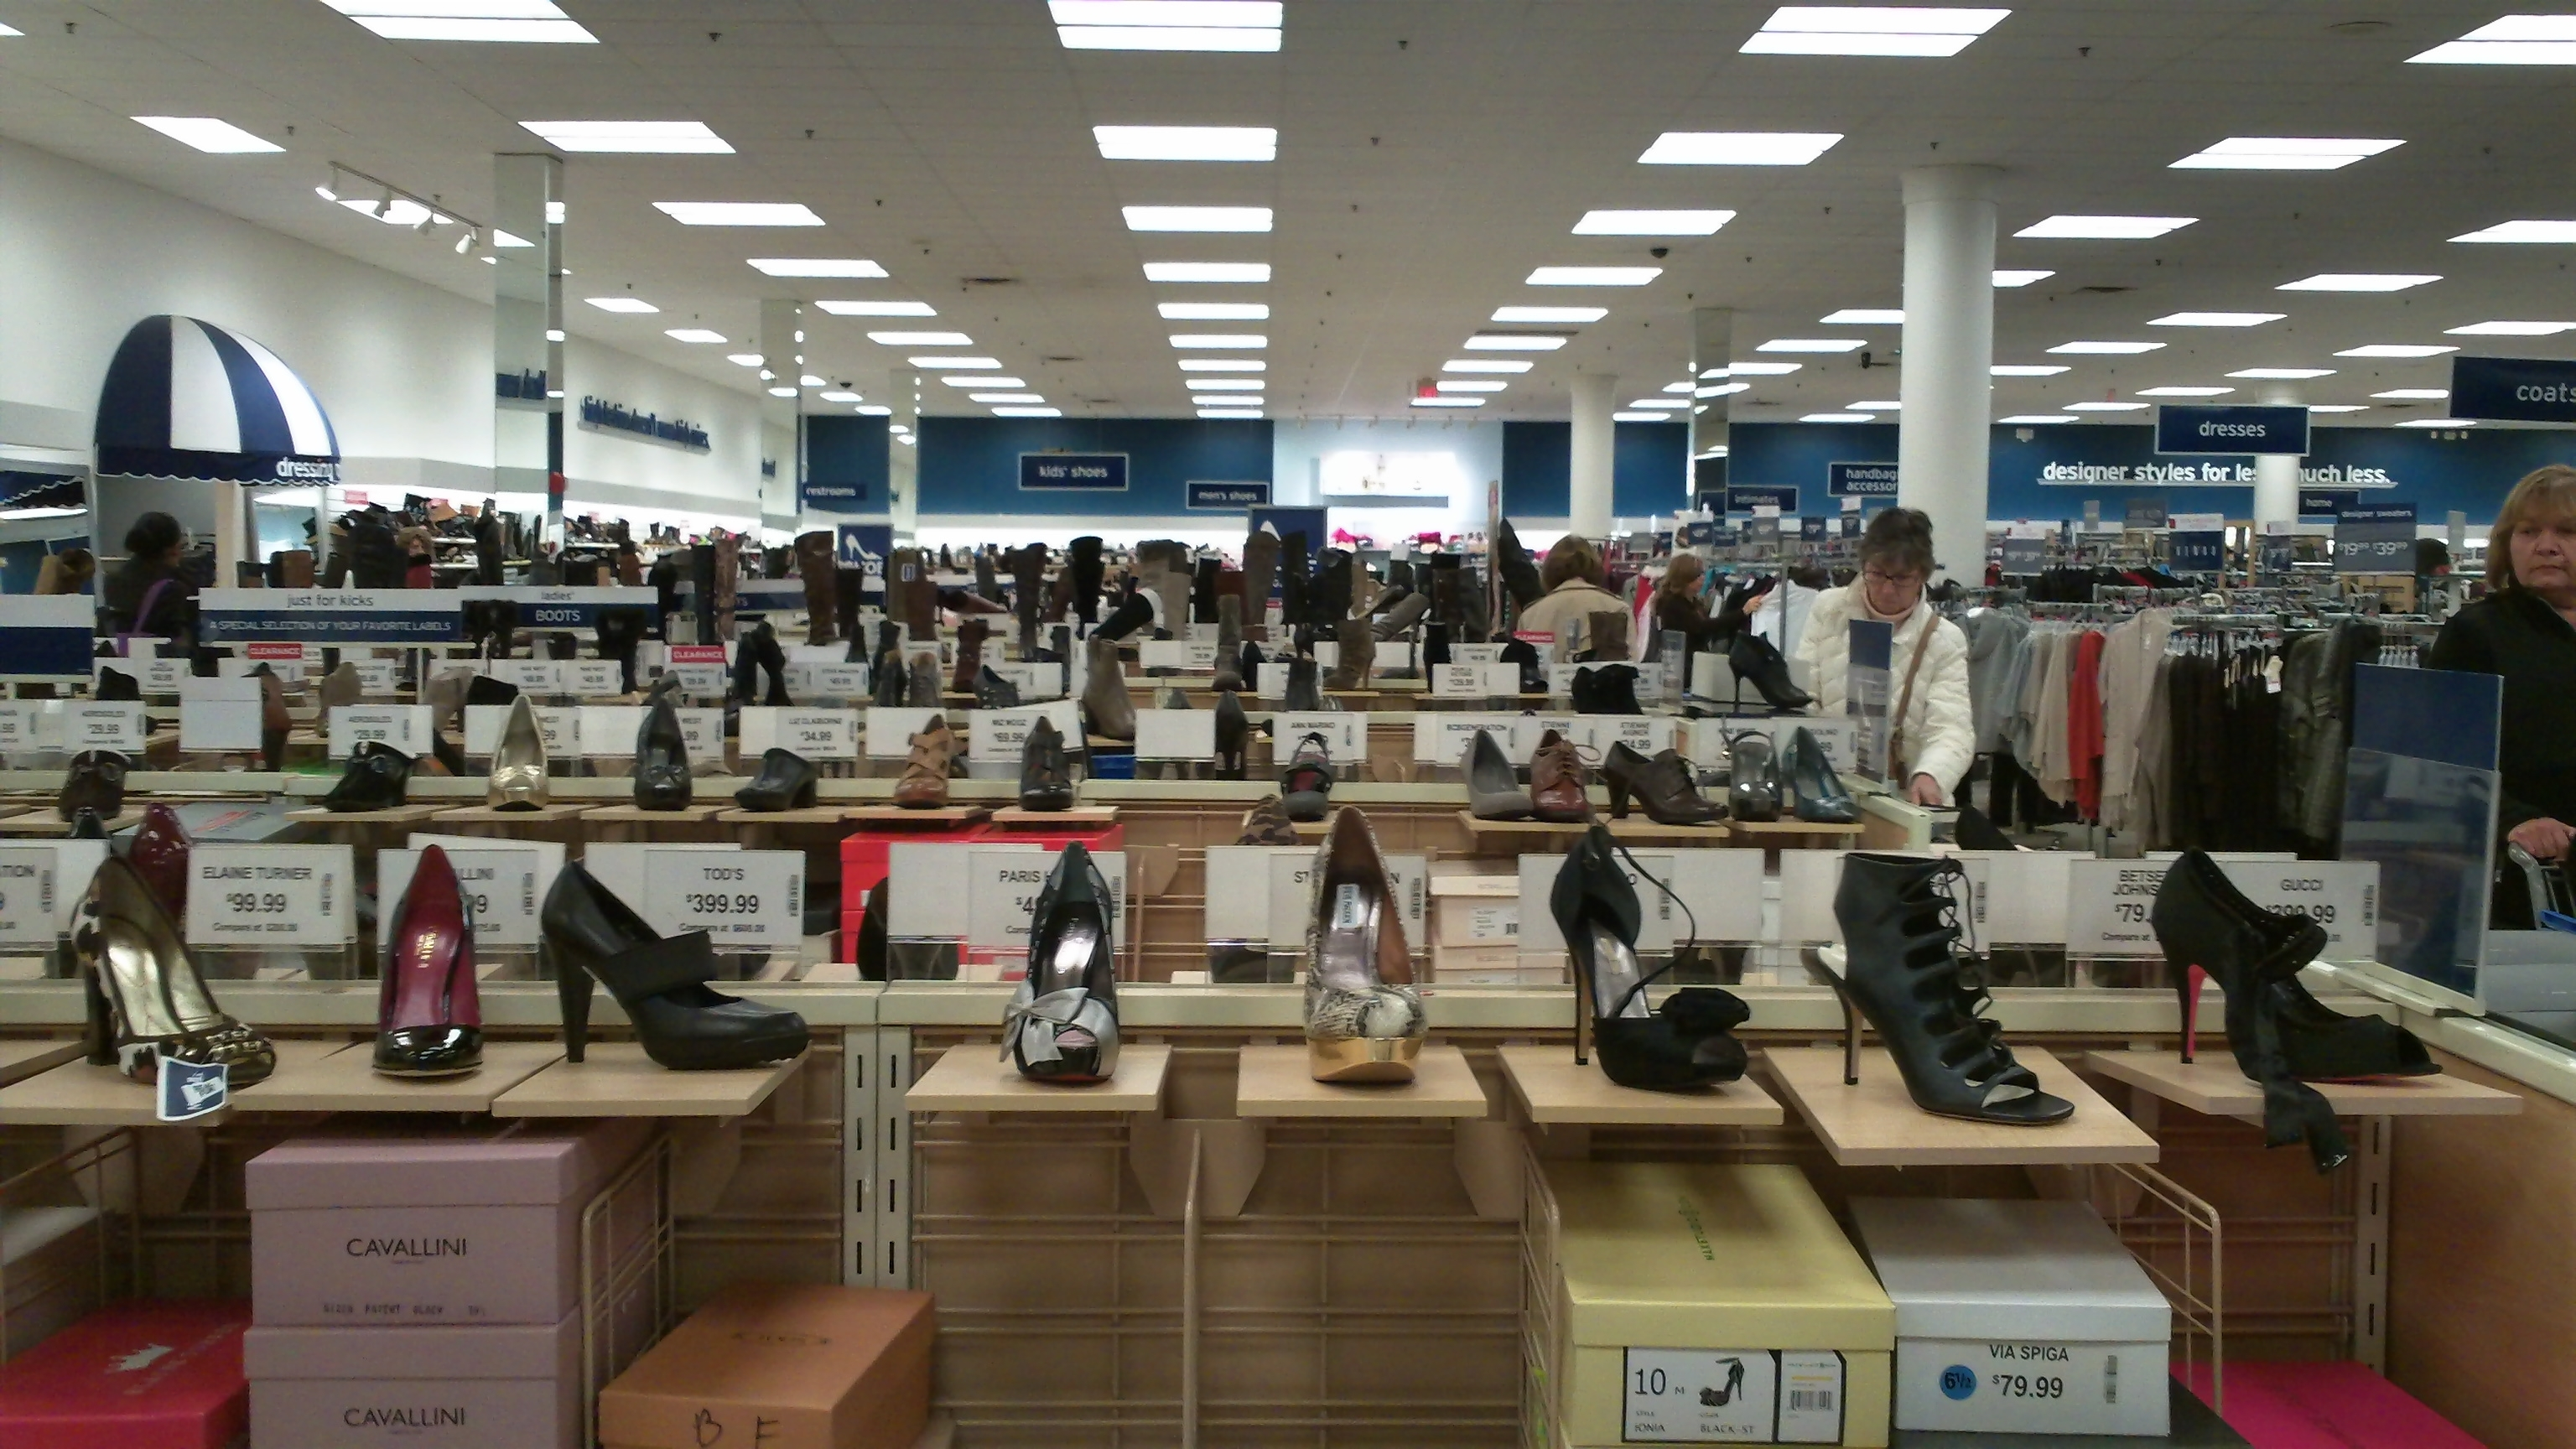 Ottawa Store Marshalls In Ottawa Gatineau Quebec Reviews In Boutiques